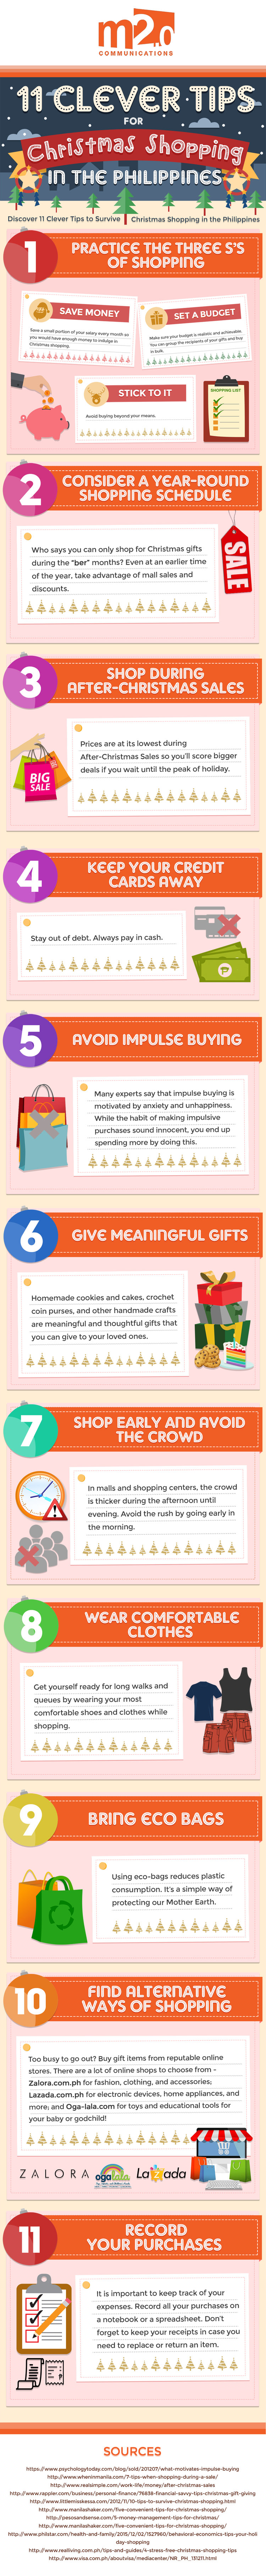 11 Clever Tips for Christmas Shopping in the Philippines